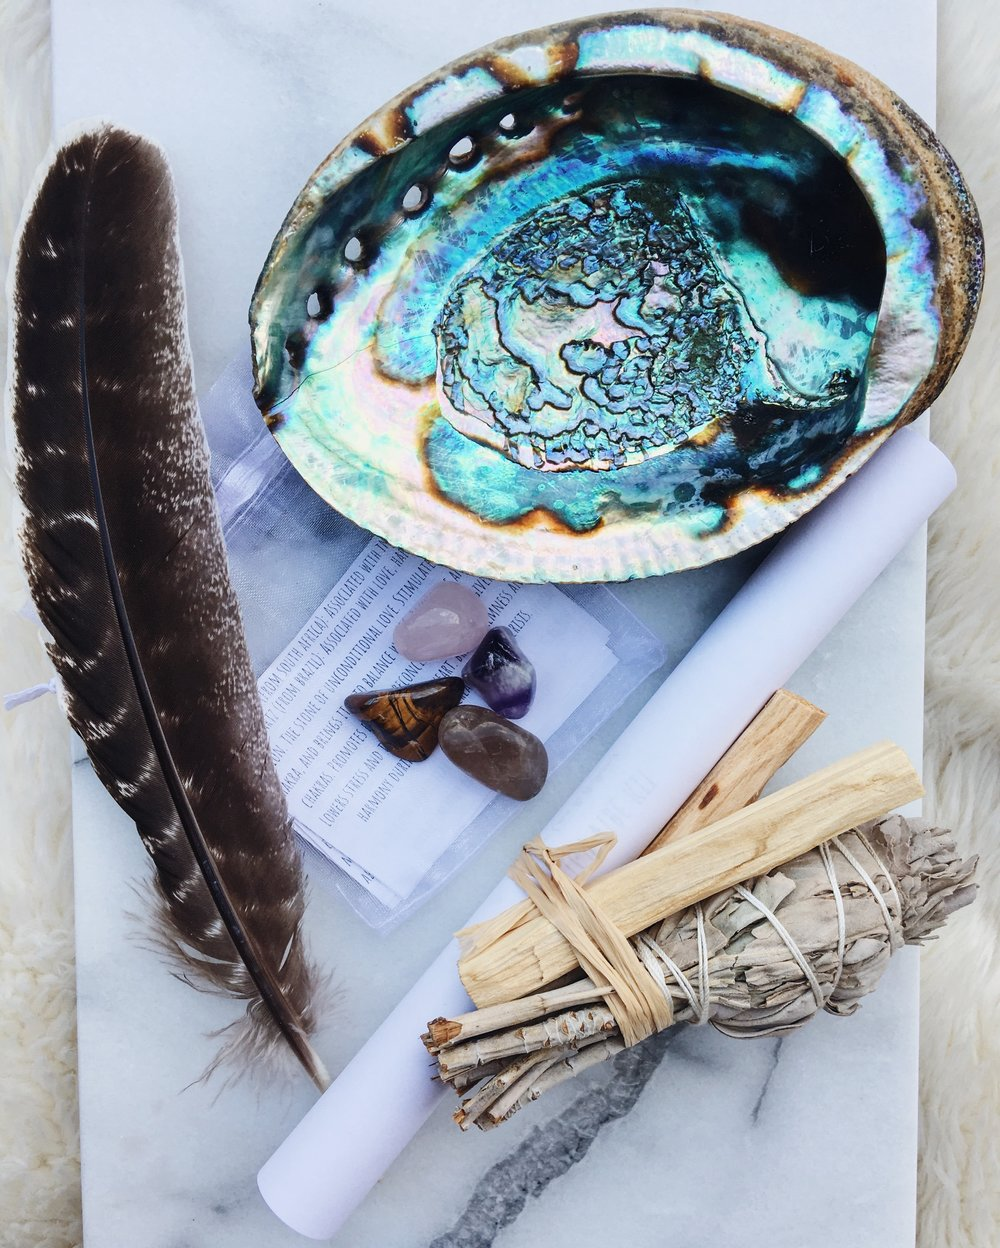 """big kit - This beautiful kit contains white sage, palo santo, crystals, a 5-6"""" abalone shell, and a barred smudging turkey feather. All of the contents were activated and cleansed by at least 2 soundbaths using crystal bowls & smudged with sage.$35/kit"""